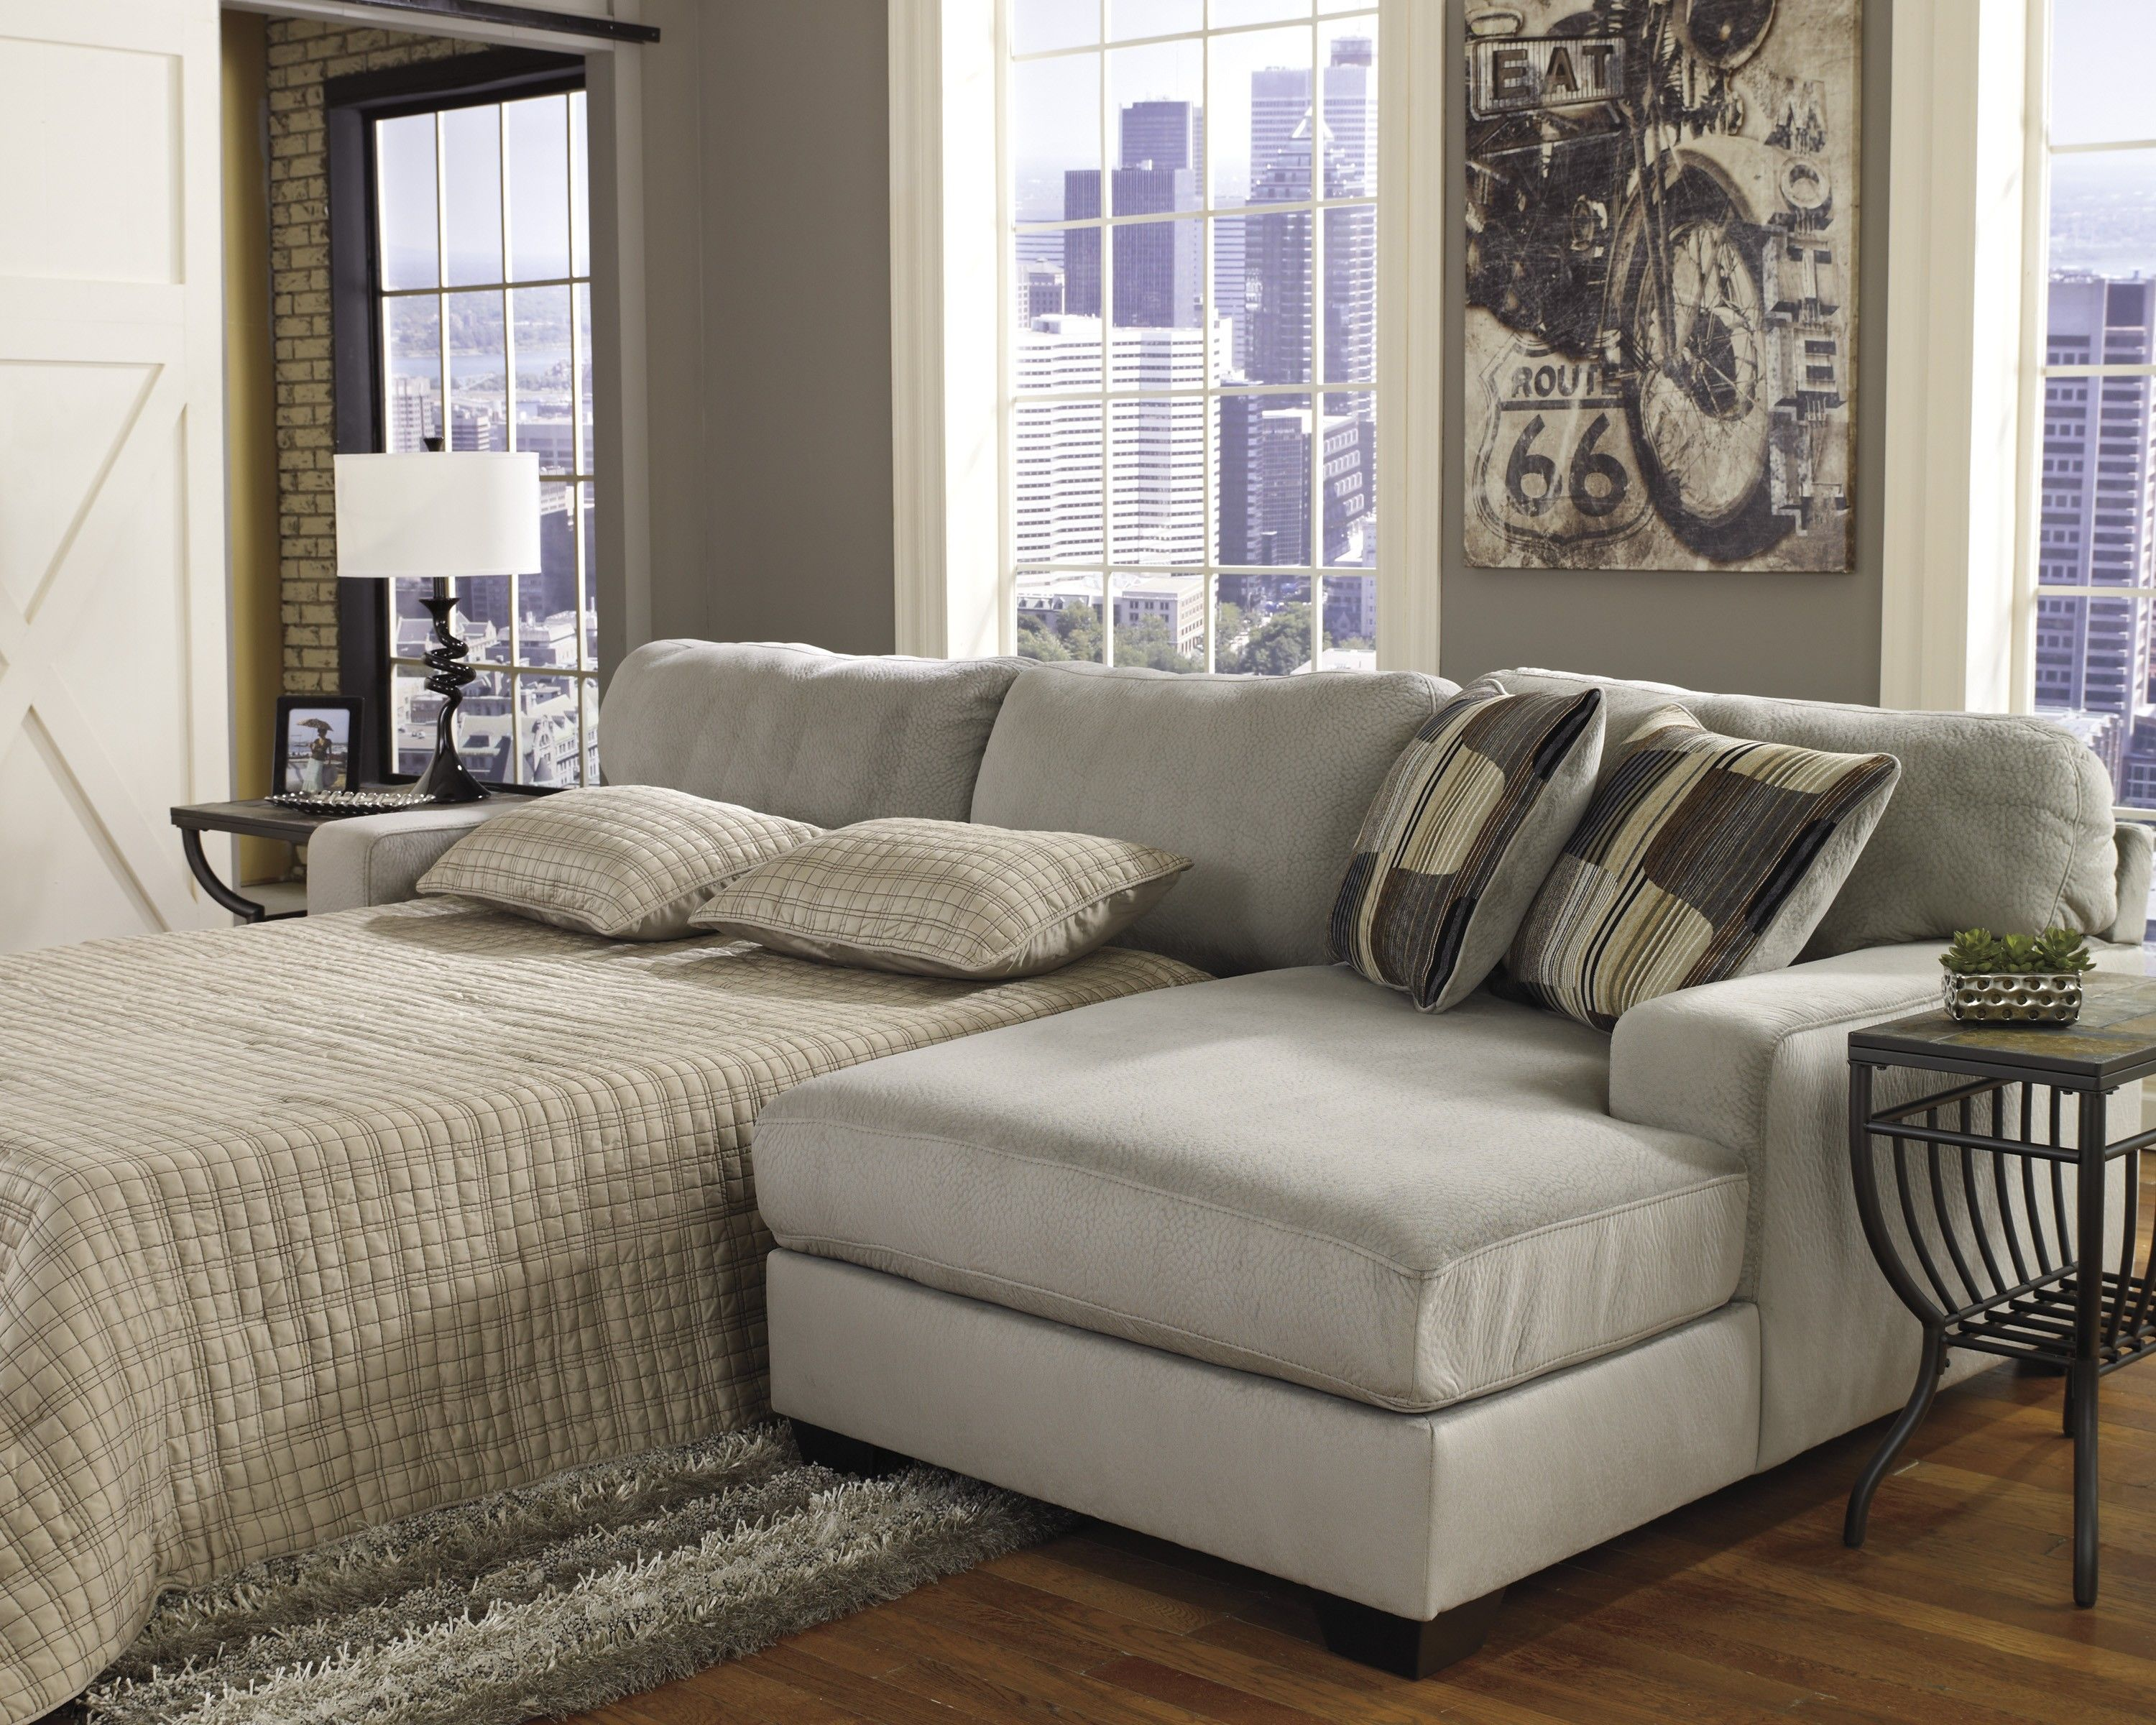 Pin By Sofacouchs On Apartment Sofa In 2019 Sectional Sleeper